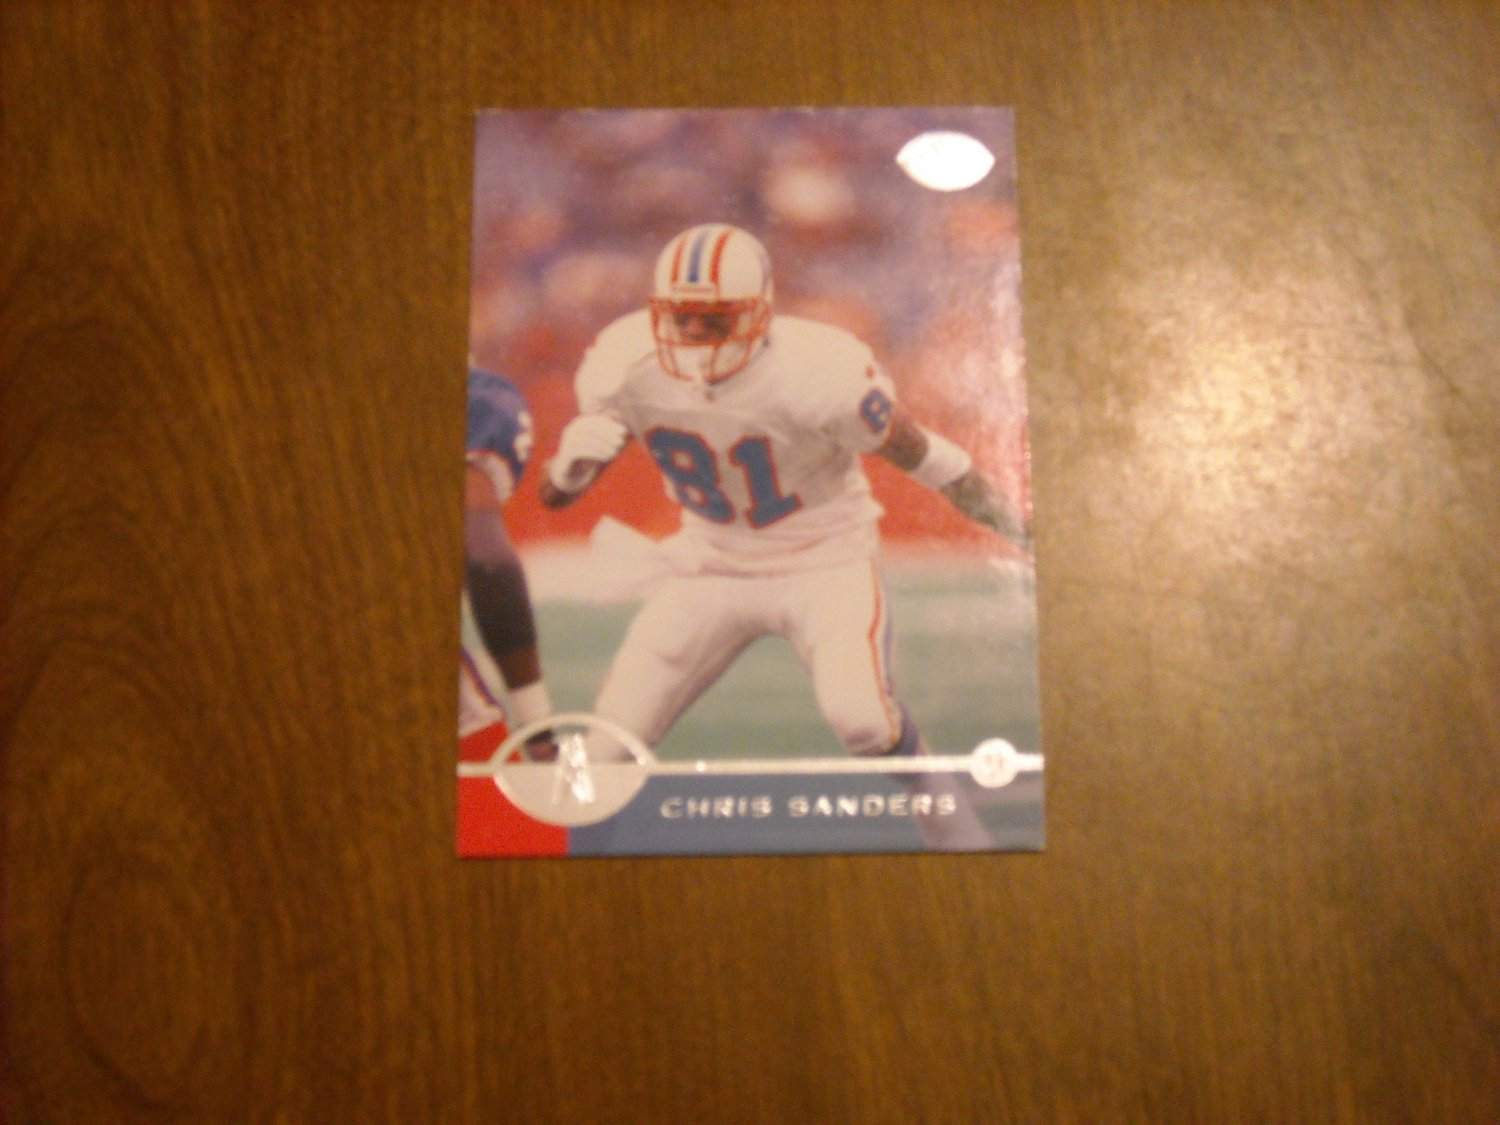 Chris Sanders Houston Oilers WR Card No. 121 - 1996 Donruss Leaf Football Card